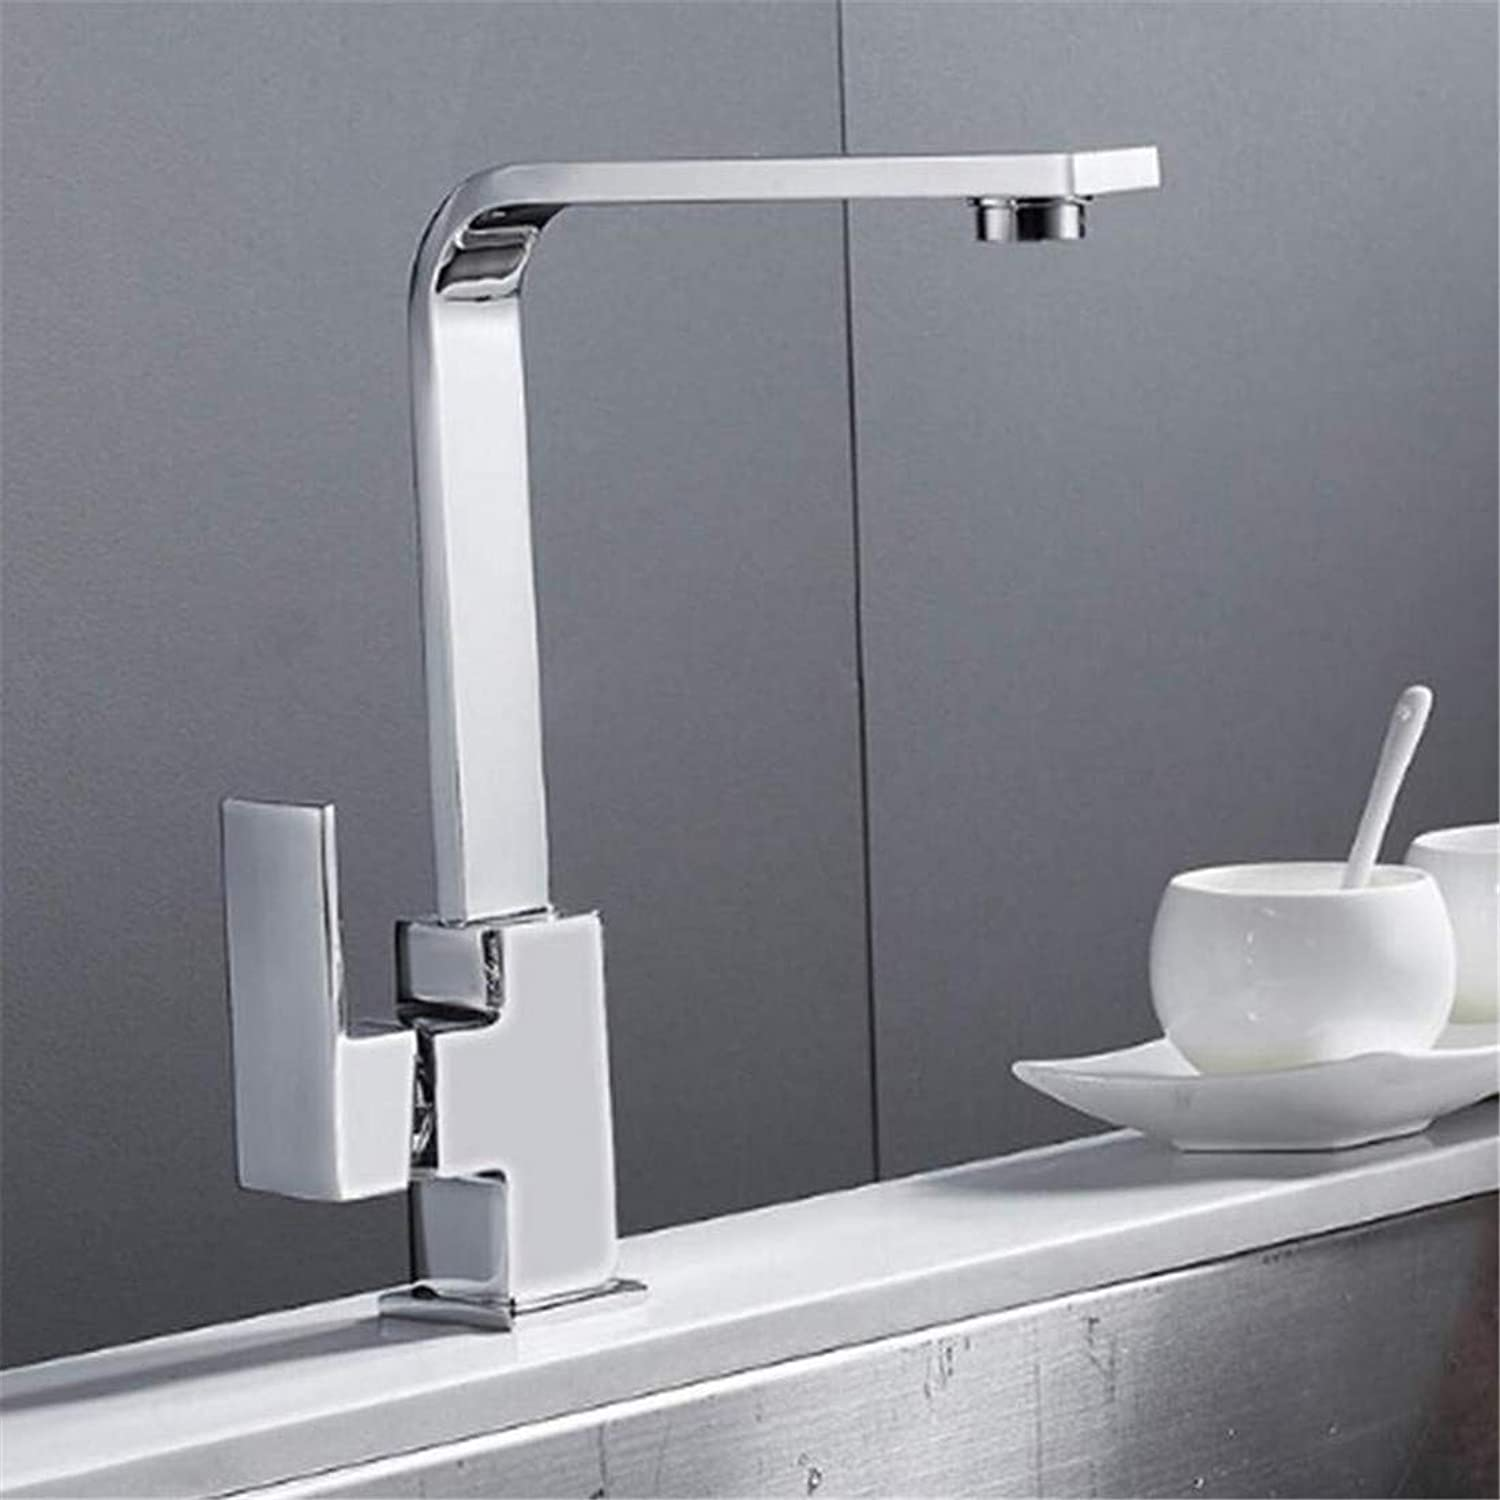 Hot and Cold Water Brass Chrome Chrome Chrome Kitchen Tap Pull Out Kitchen Faucet Sink Mono Group Single Lever redary Spout Mixer Faucet Brass 6bbdb7